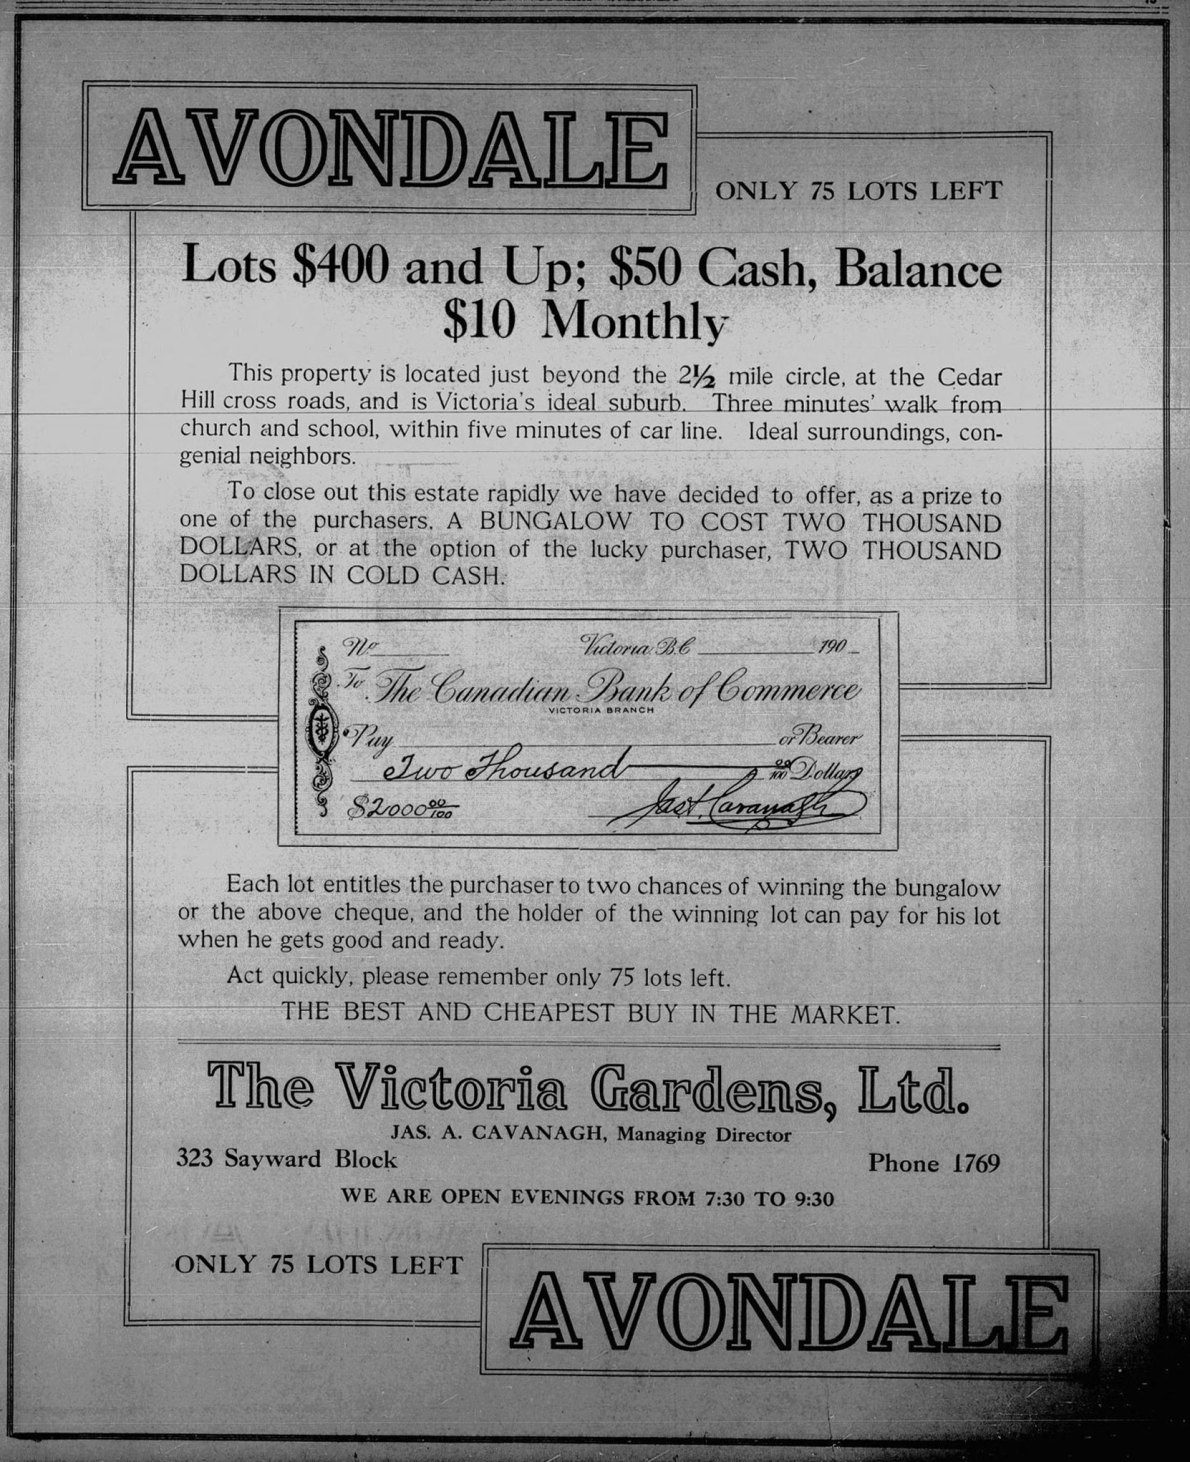 1912 advertisement for the then newly developed Avondale subdivision, off what is now Henderson Road in Oak Bay.